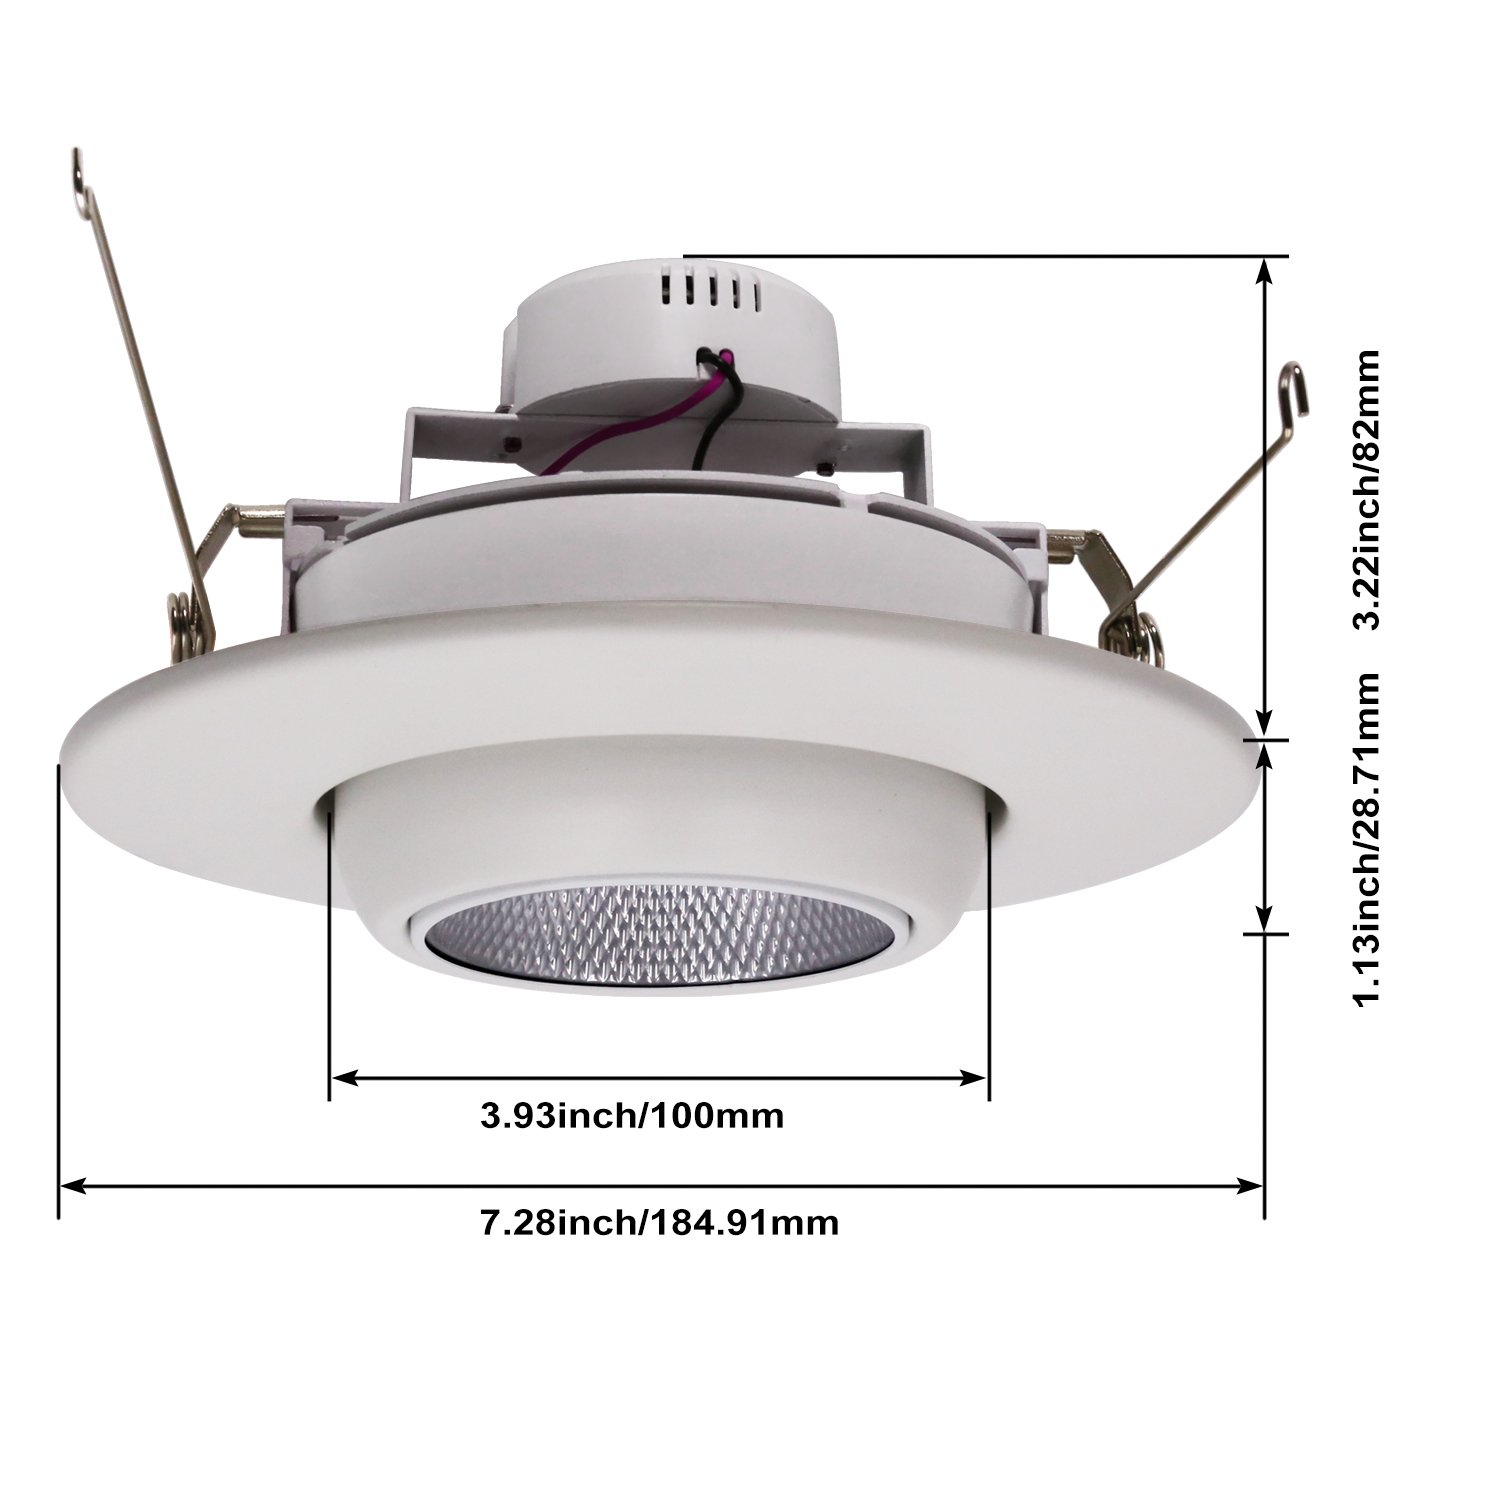 TORCHSTAR High CRI90+ 6inch Dimmable Gimbal Recessed LED Downlight, 10W (75W Equiv.), ENERGY STAR, 5000K Daylight, 950lm, Adjustable LED Retrofit Lighting Fixture, 5 YEARS WARRANTY, Pack of 4 by TORCHSTAR (Image #8)